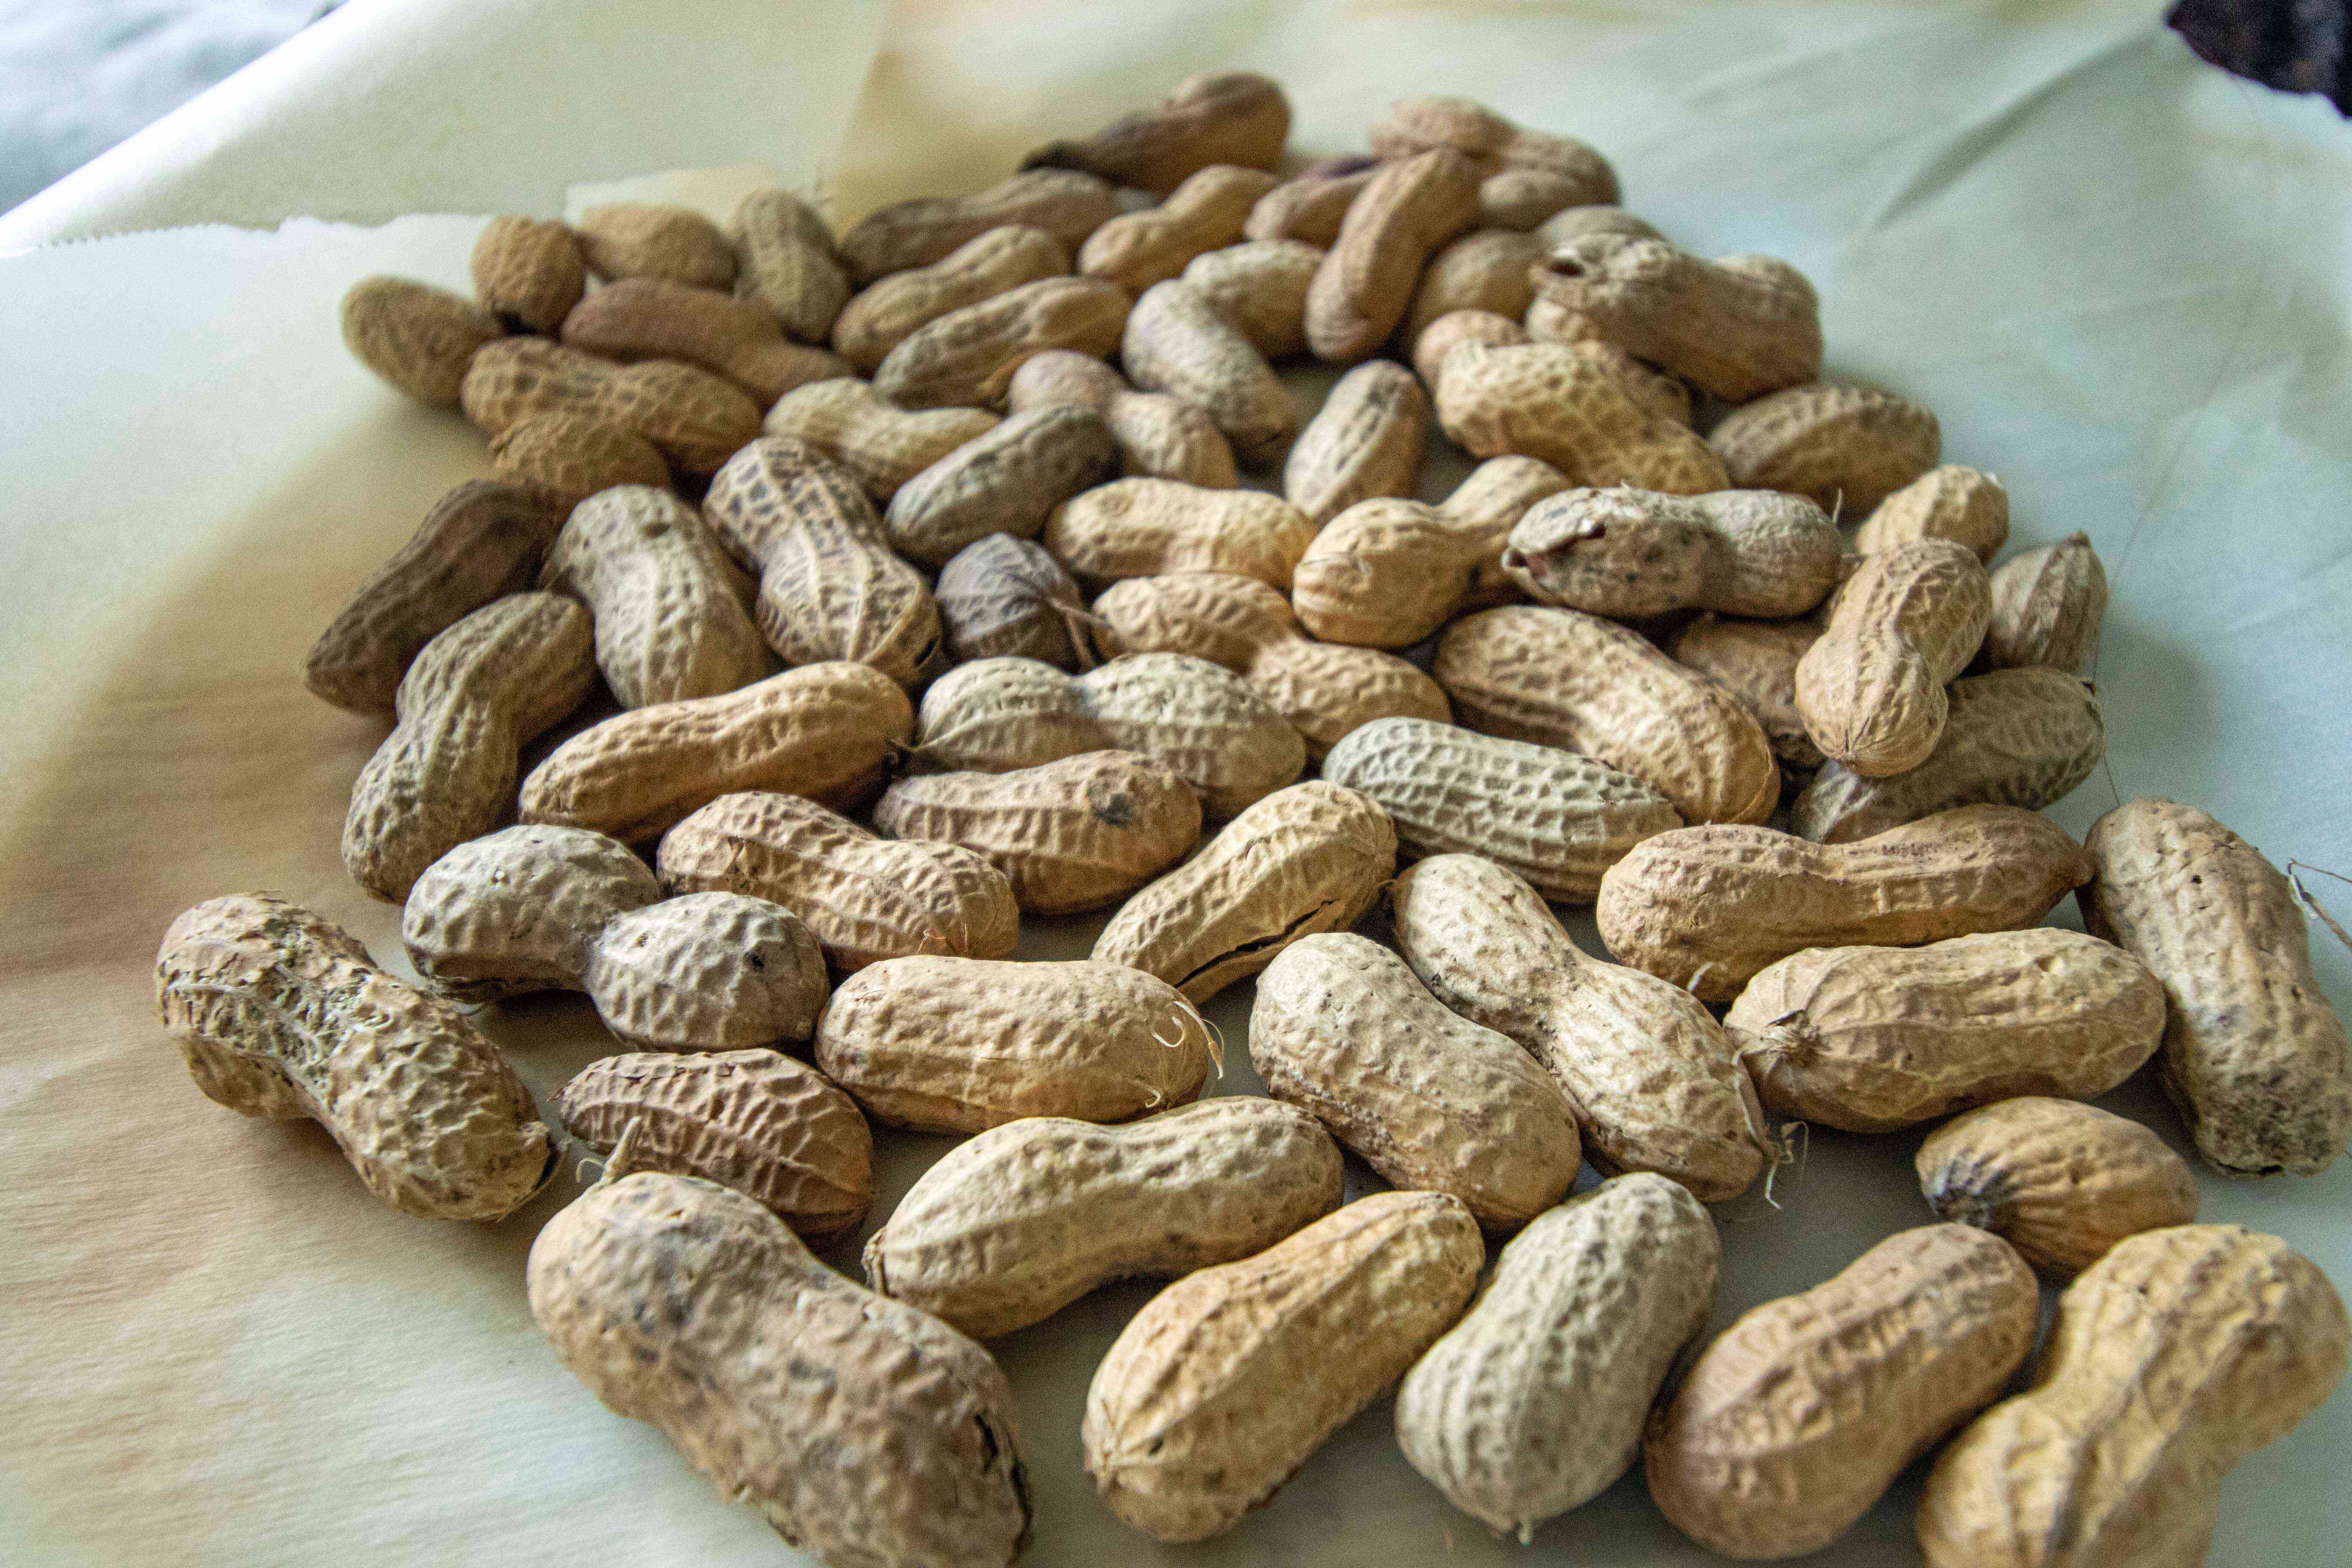 freshly harvested peanuts after being roasted, ready for storage